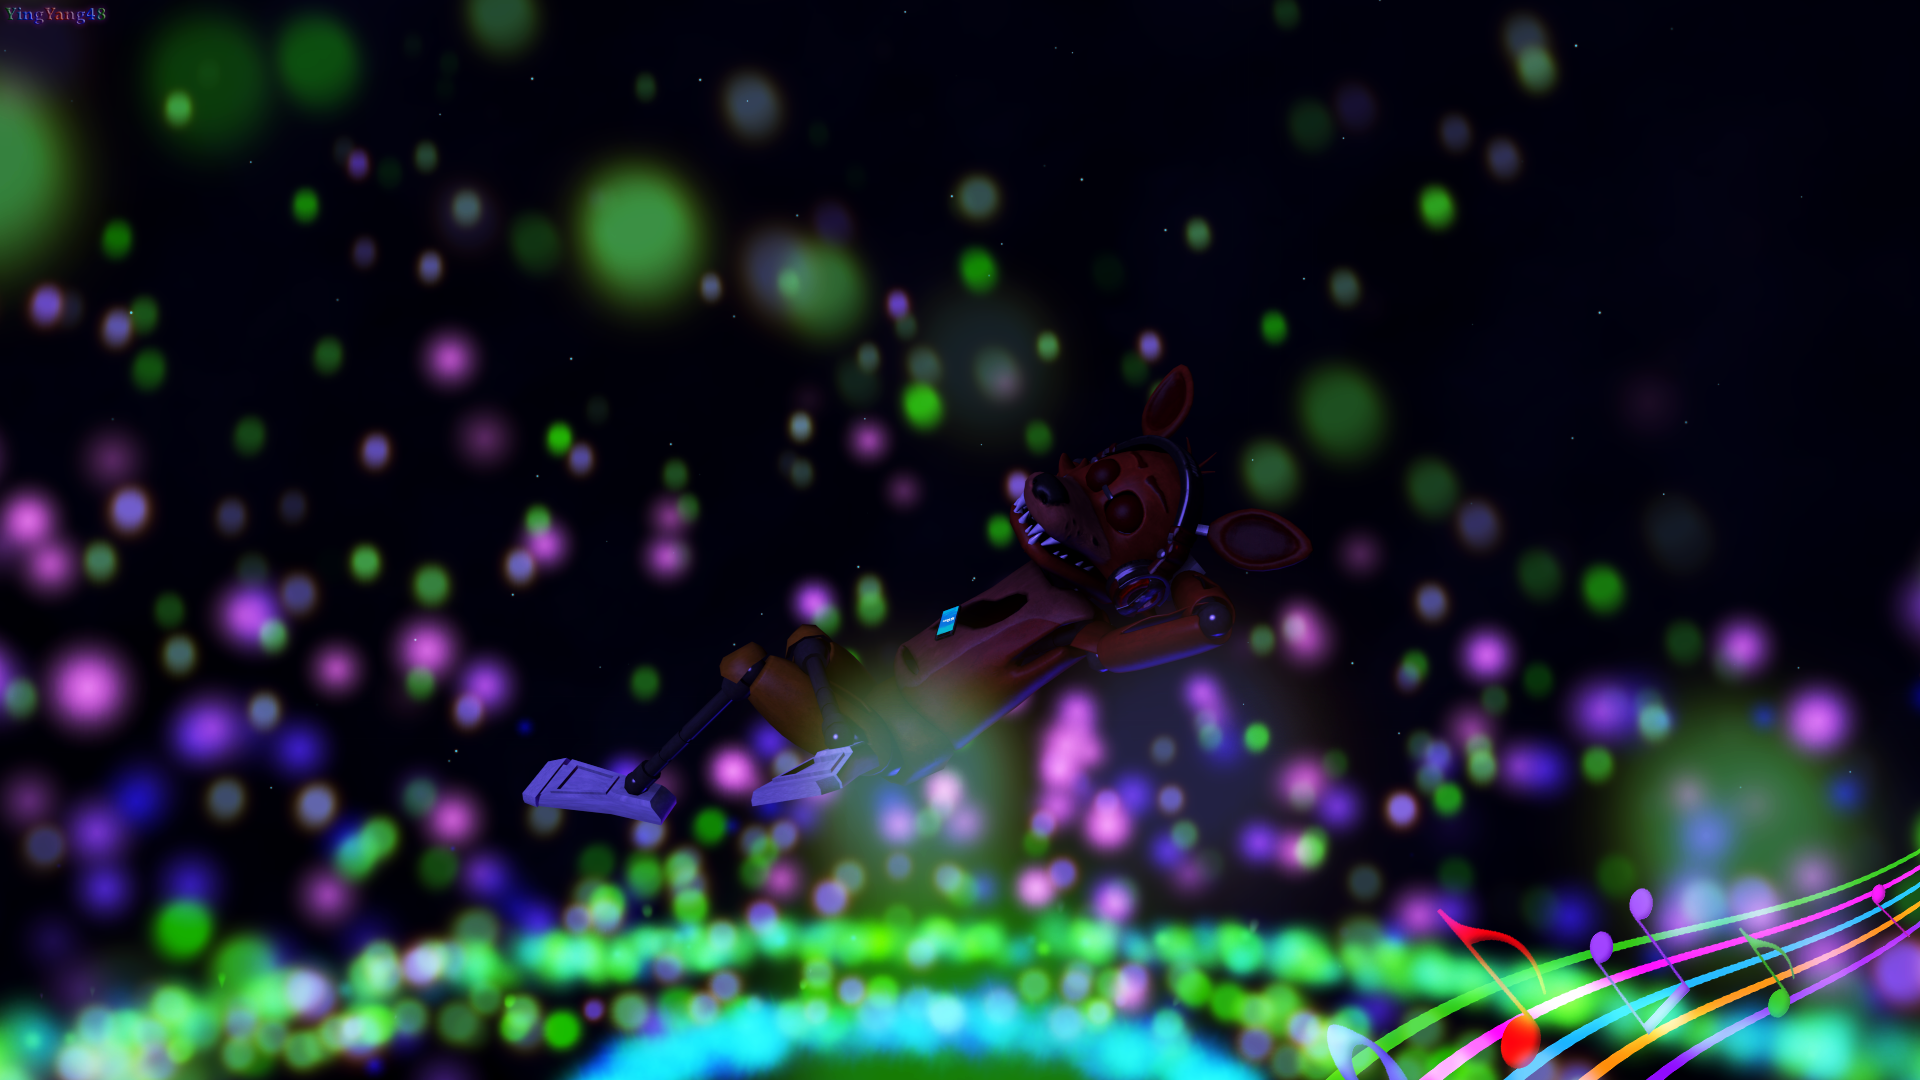 Video Game Five Nights At Freddy 039 S 1920x1080